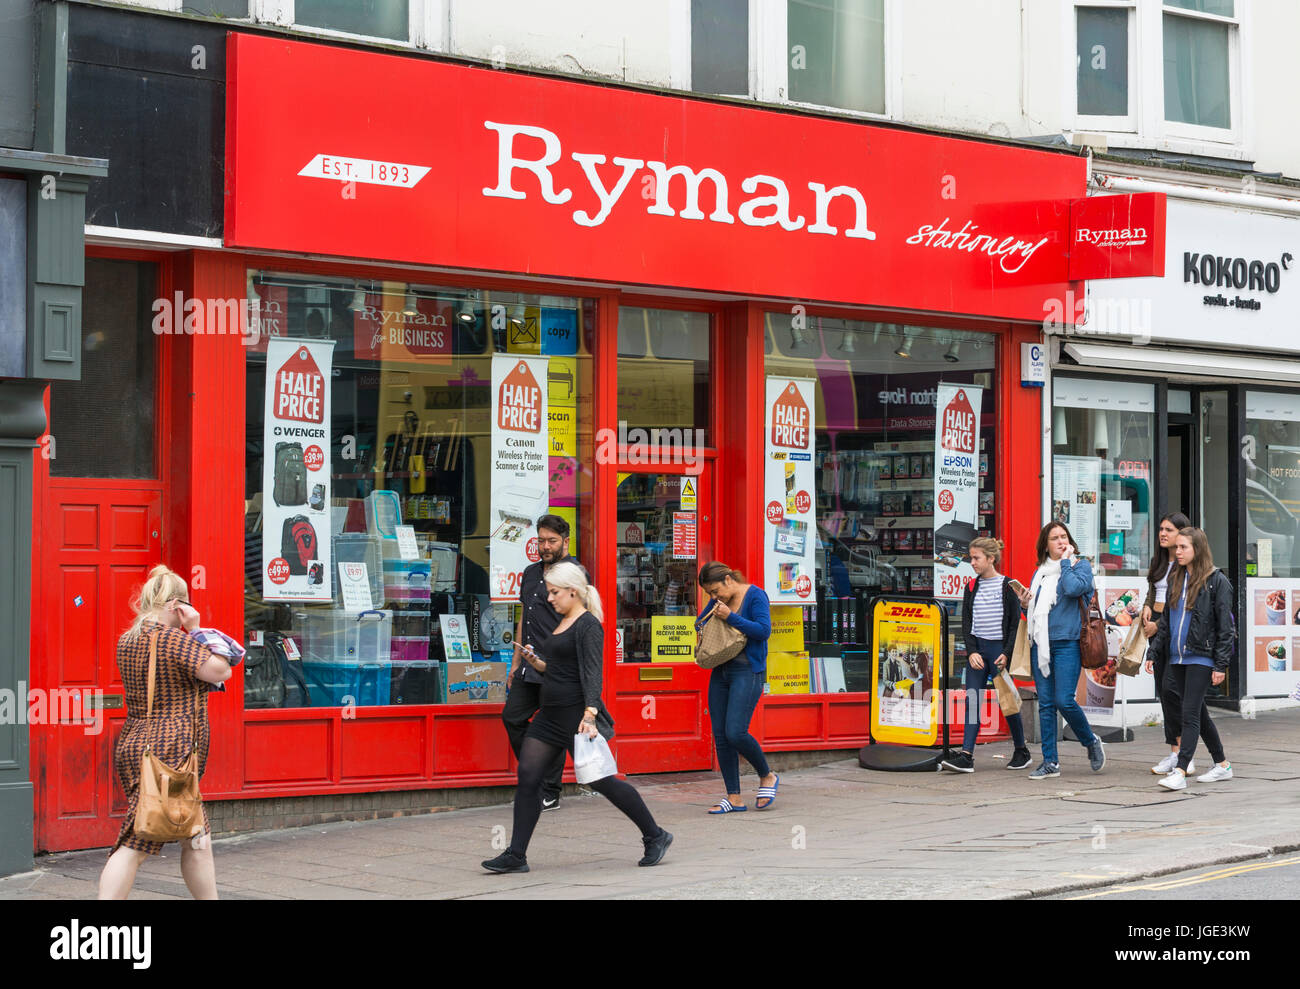 Ryman stationary shop front in the UK. Retail store. - Stock Image